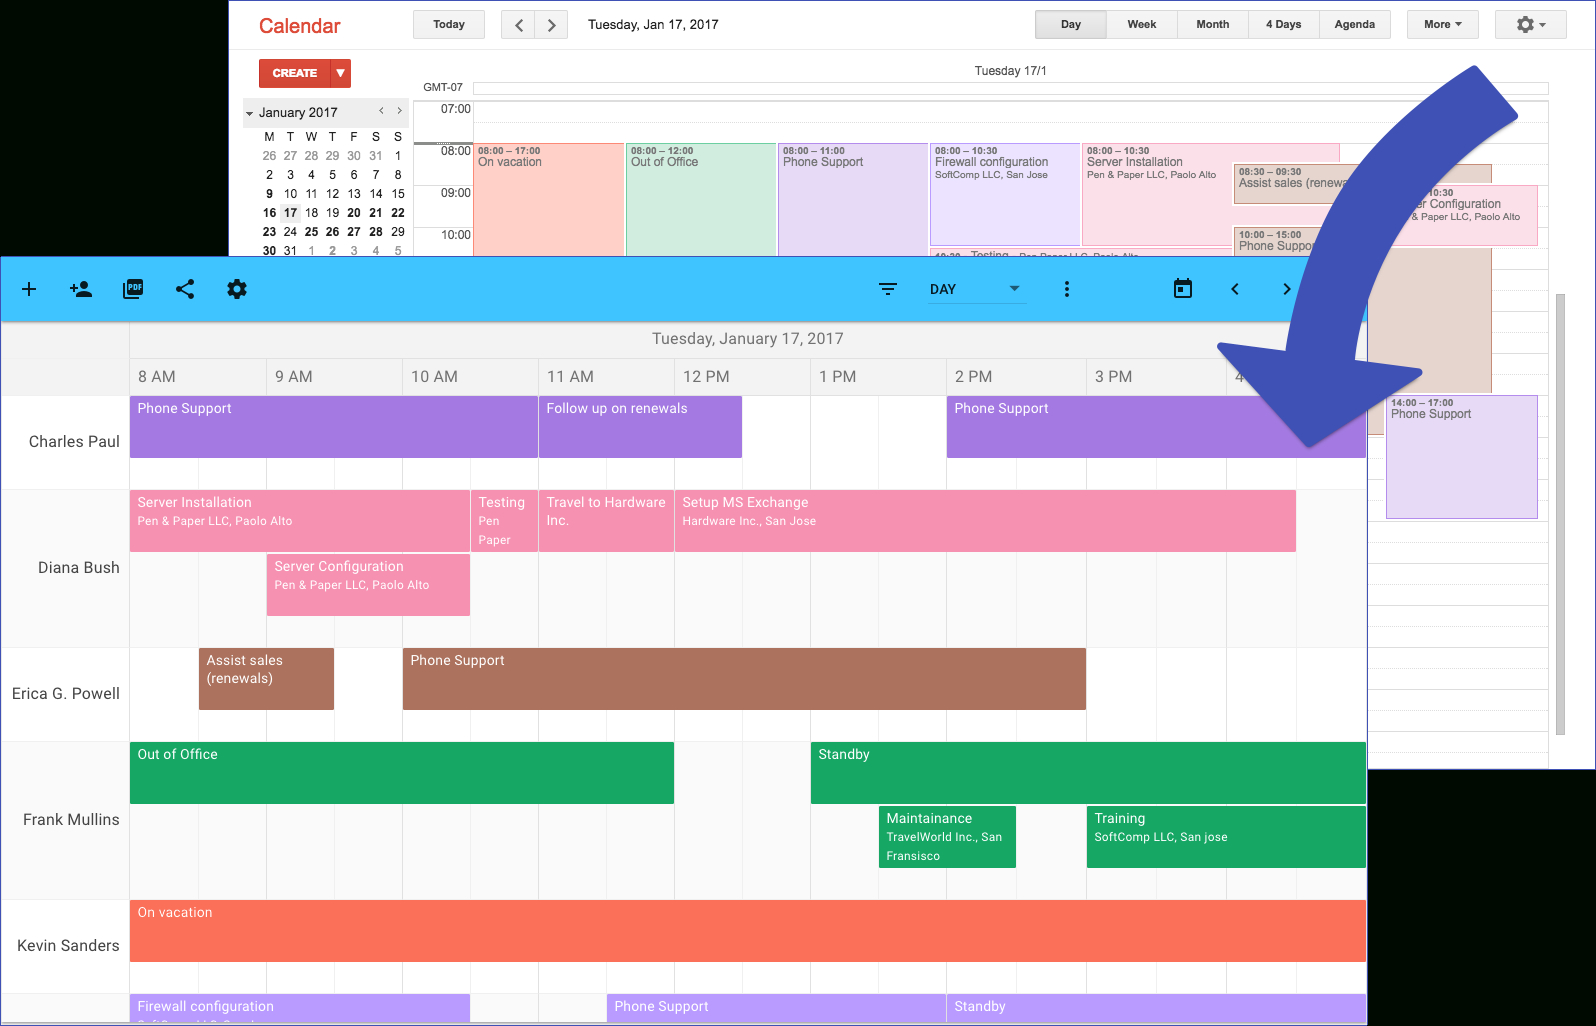 Ganttplanner: Turn Your Google Calendar Into A Gantt Chart